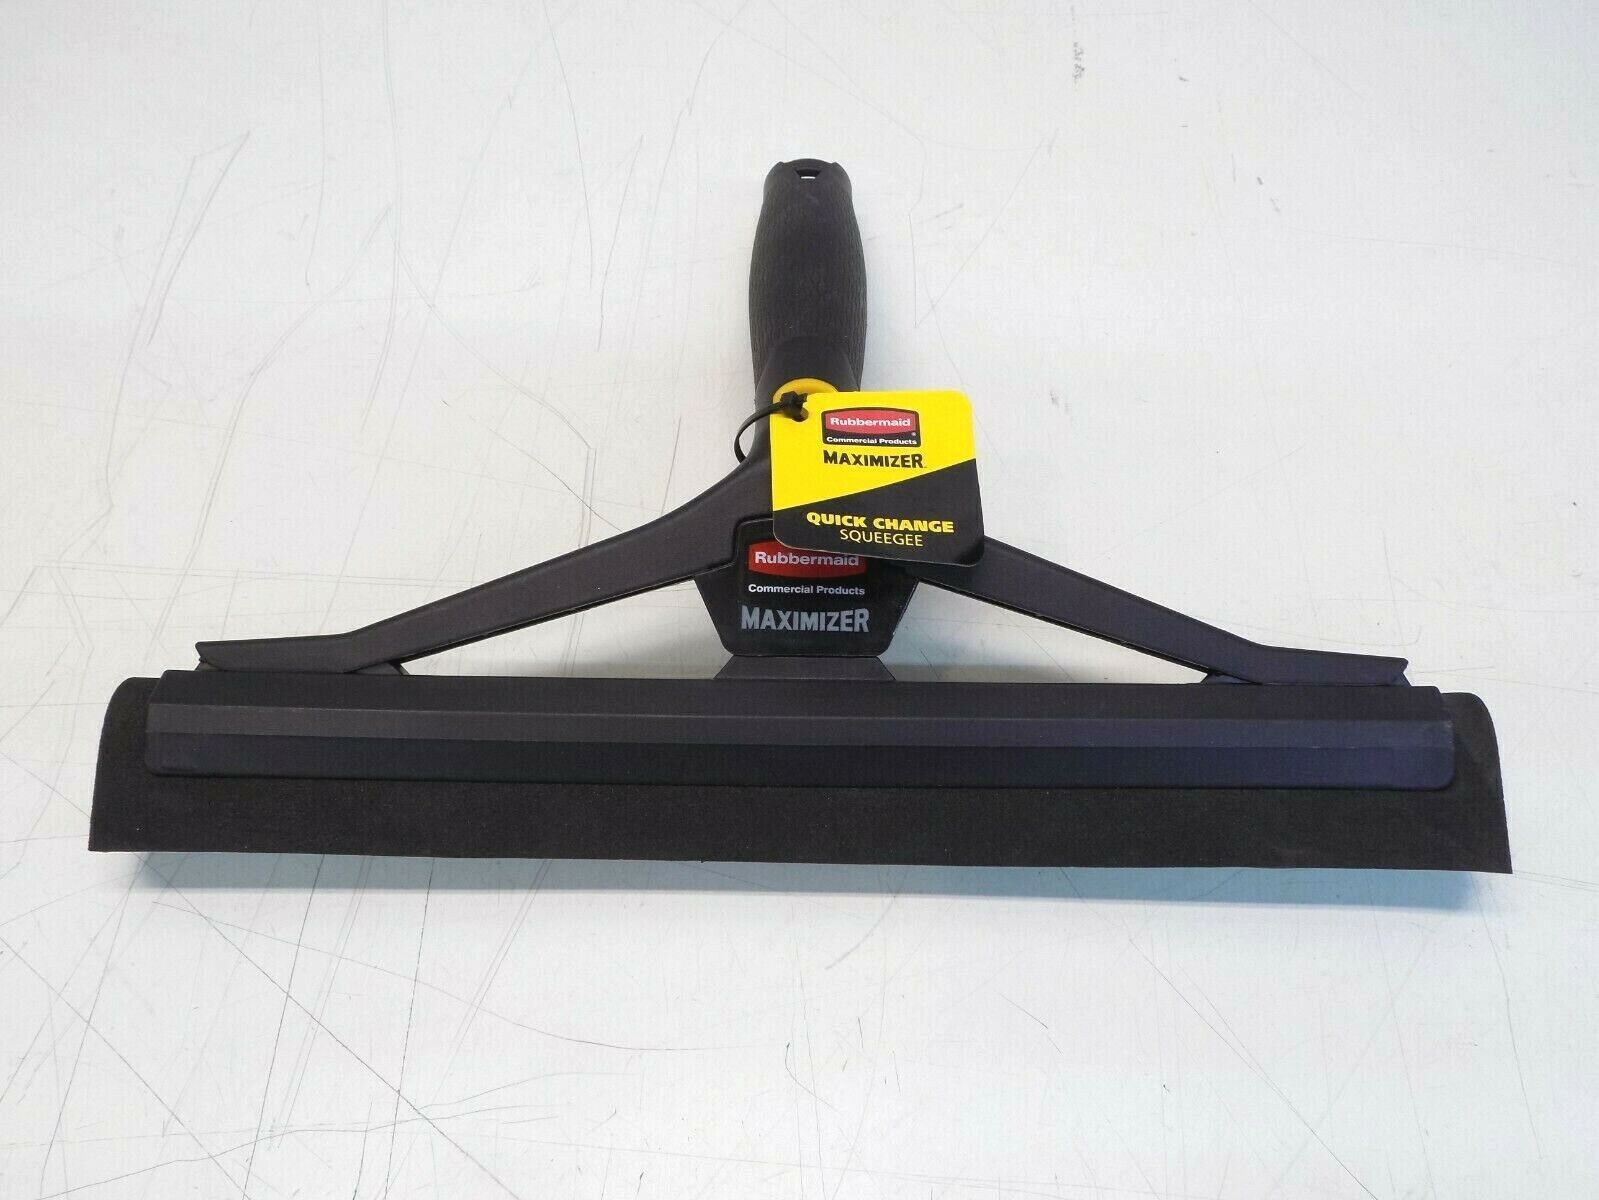 Rubbermaid Maximizer Quick Change Squeegee 2069049 Commercia